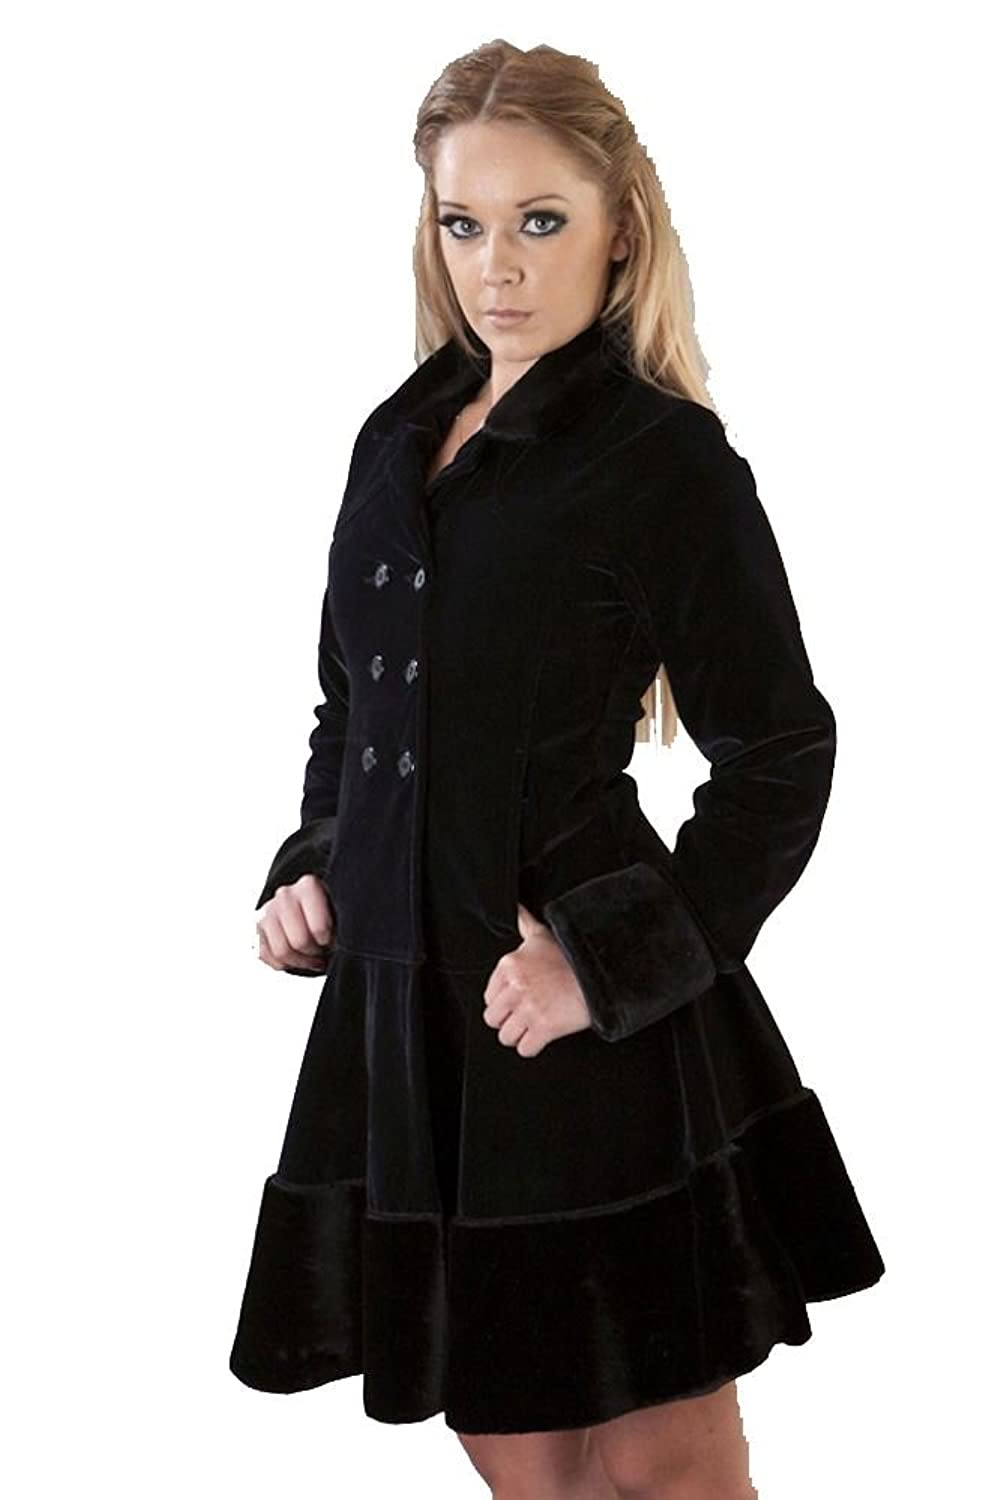 Victorian Clothing, Costumes & 1800s Fashion Dark womens coat in black velvet flock and black fur by Burleska $139.95 AT vintagedancer.com